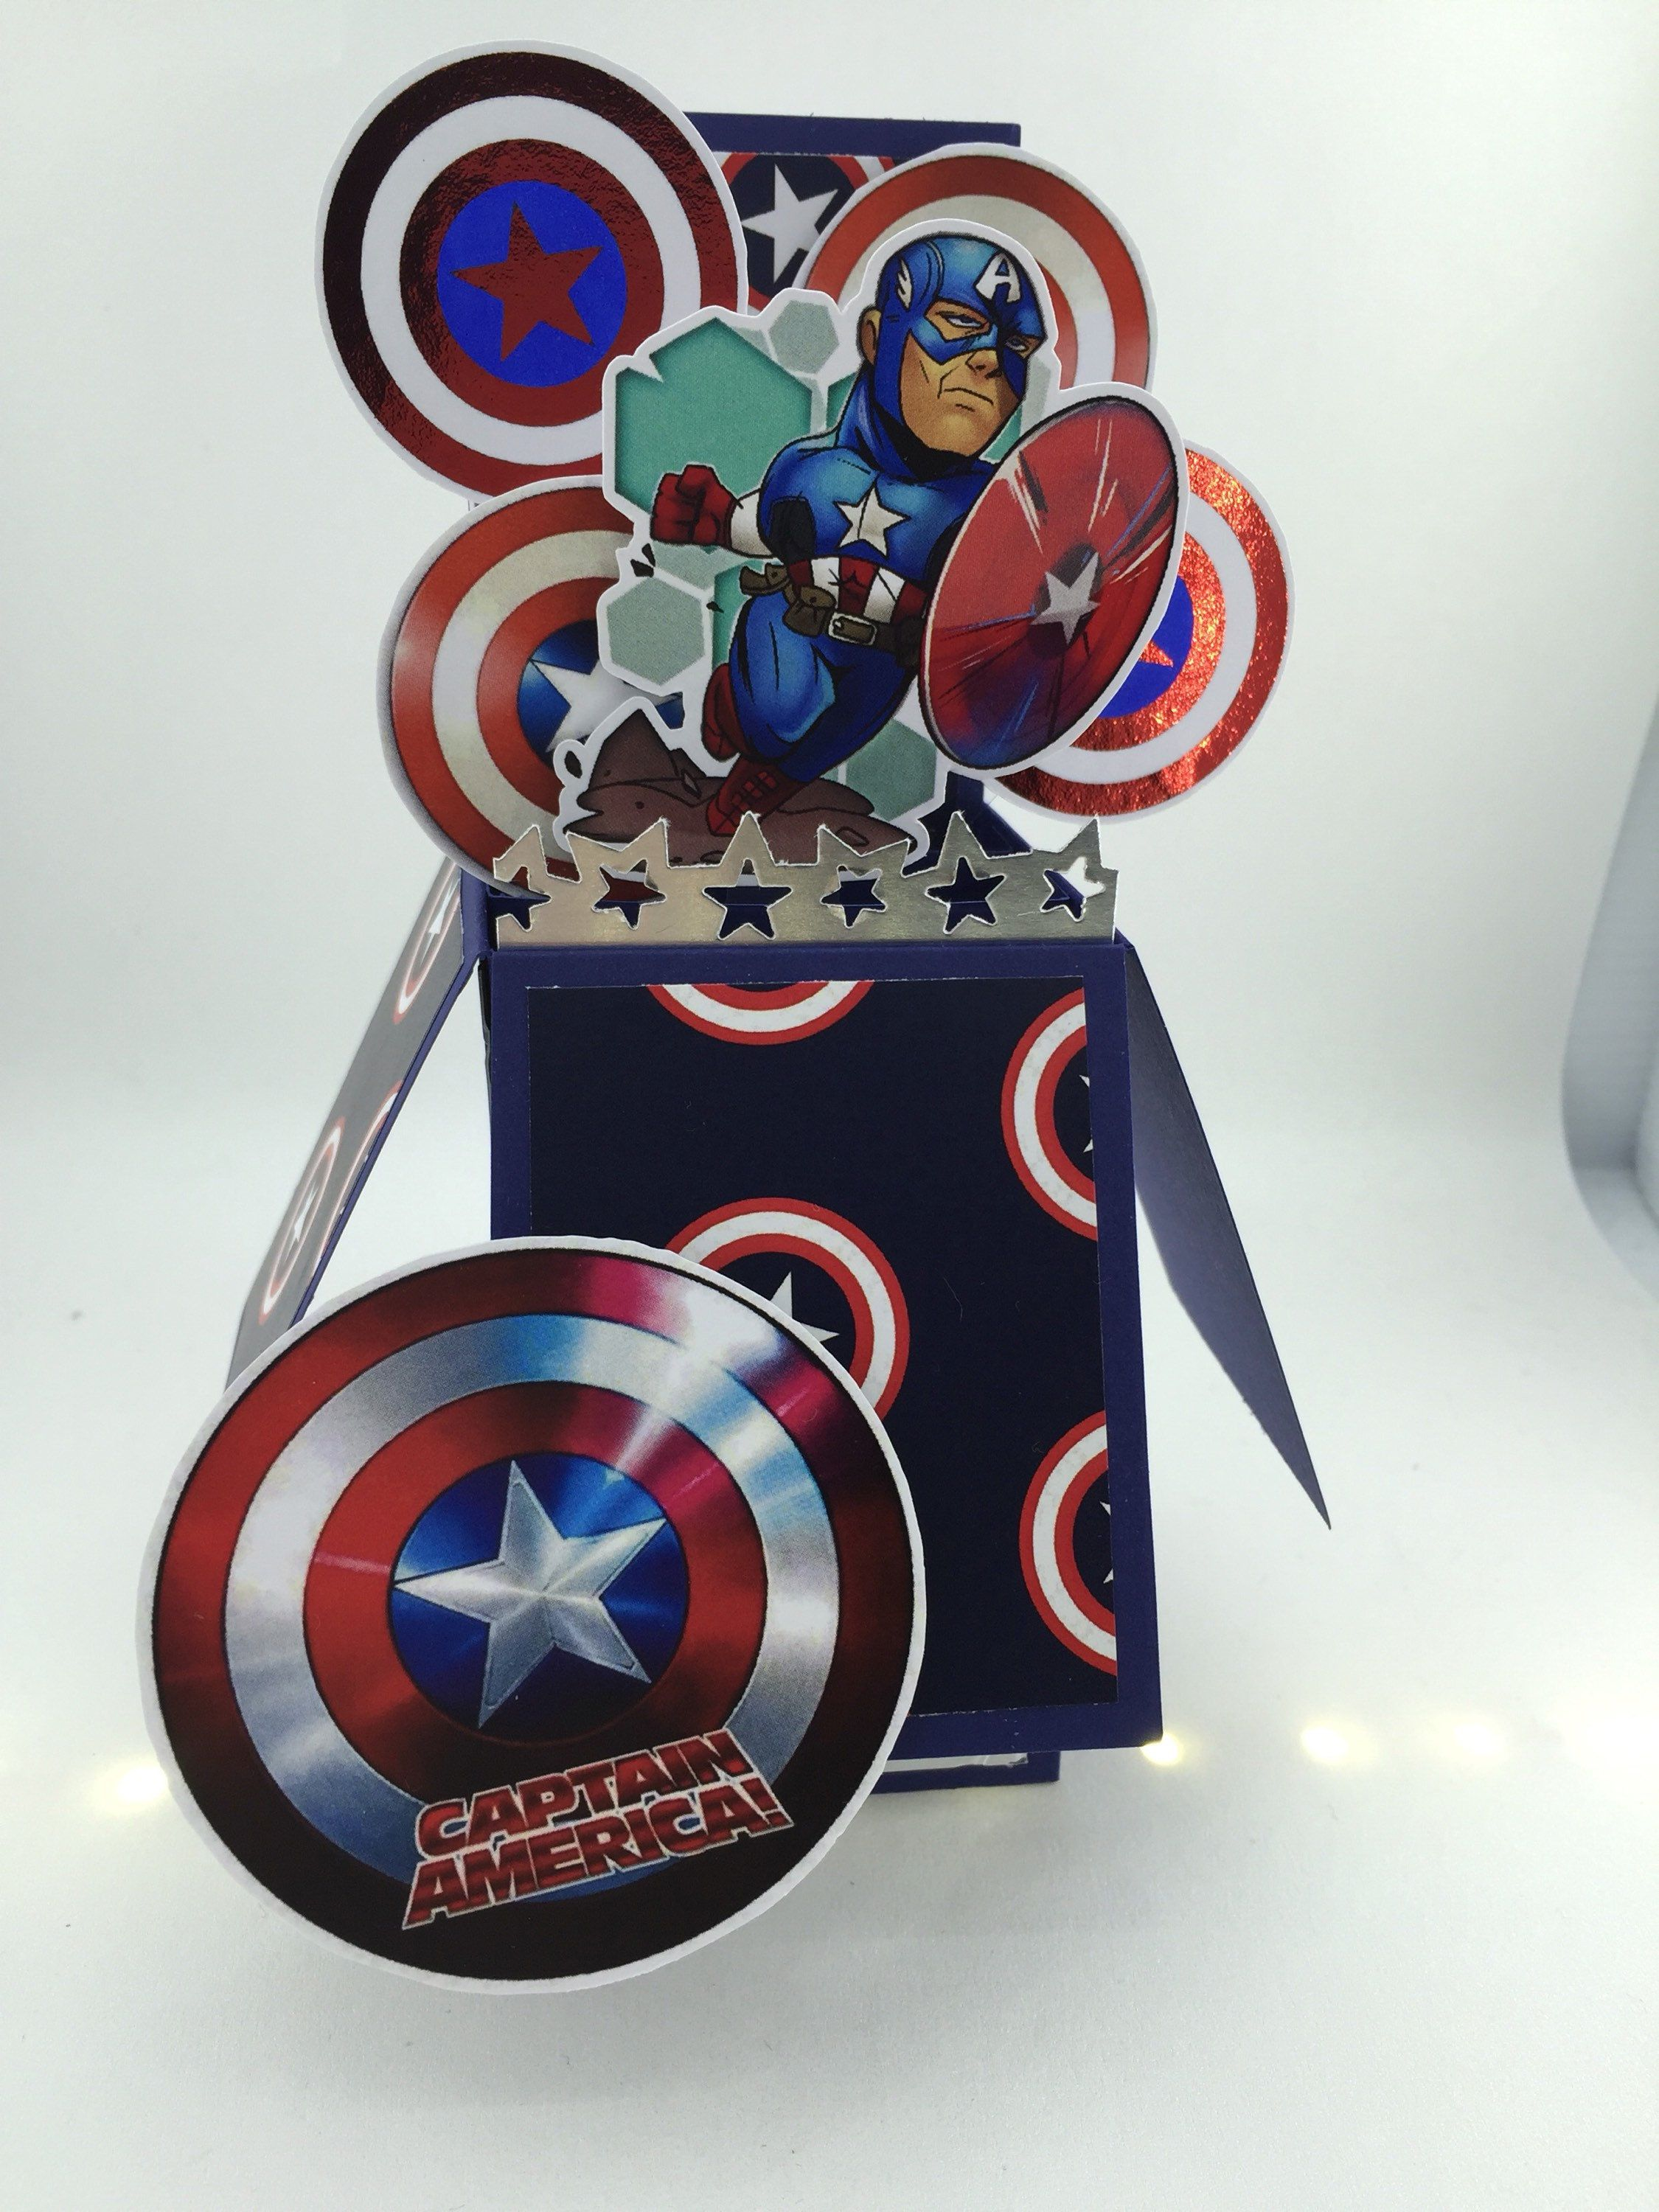 Loving My New Card Captain America 3d Pop Up Card Https Etsy Me 2iomsz0 Papergoods Blue Red Birthday Popup Card Marvel Cards Birthday Cards Diy Cards